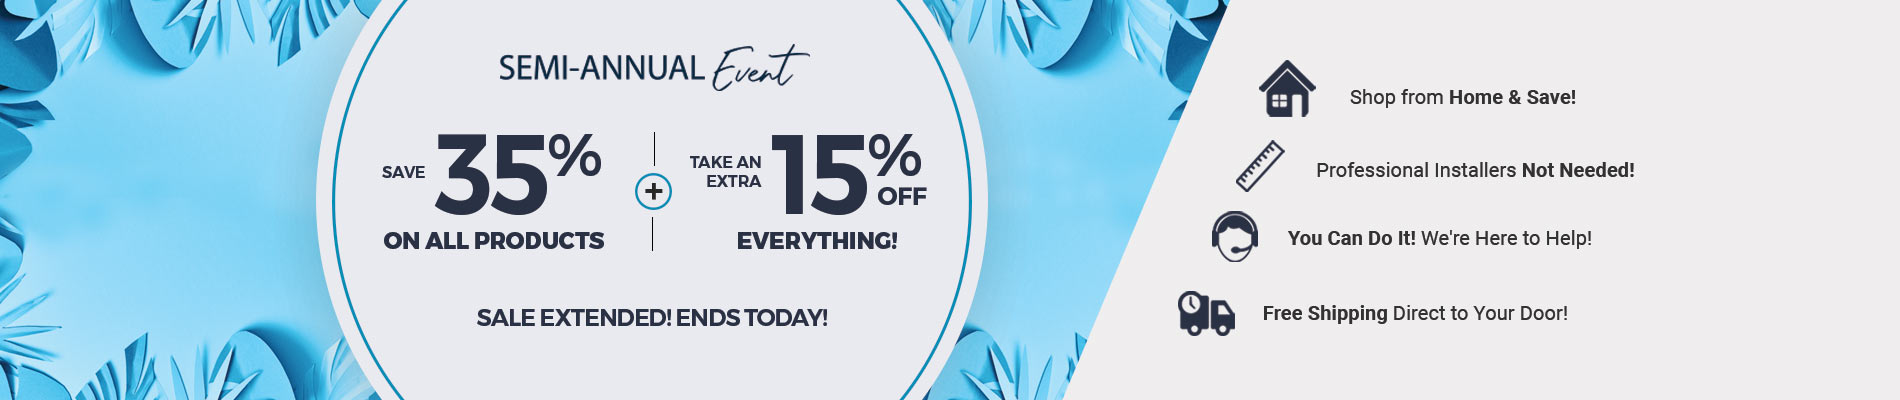 Save 35% + Extra 15% Off Everything